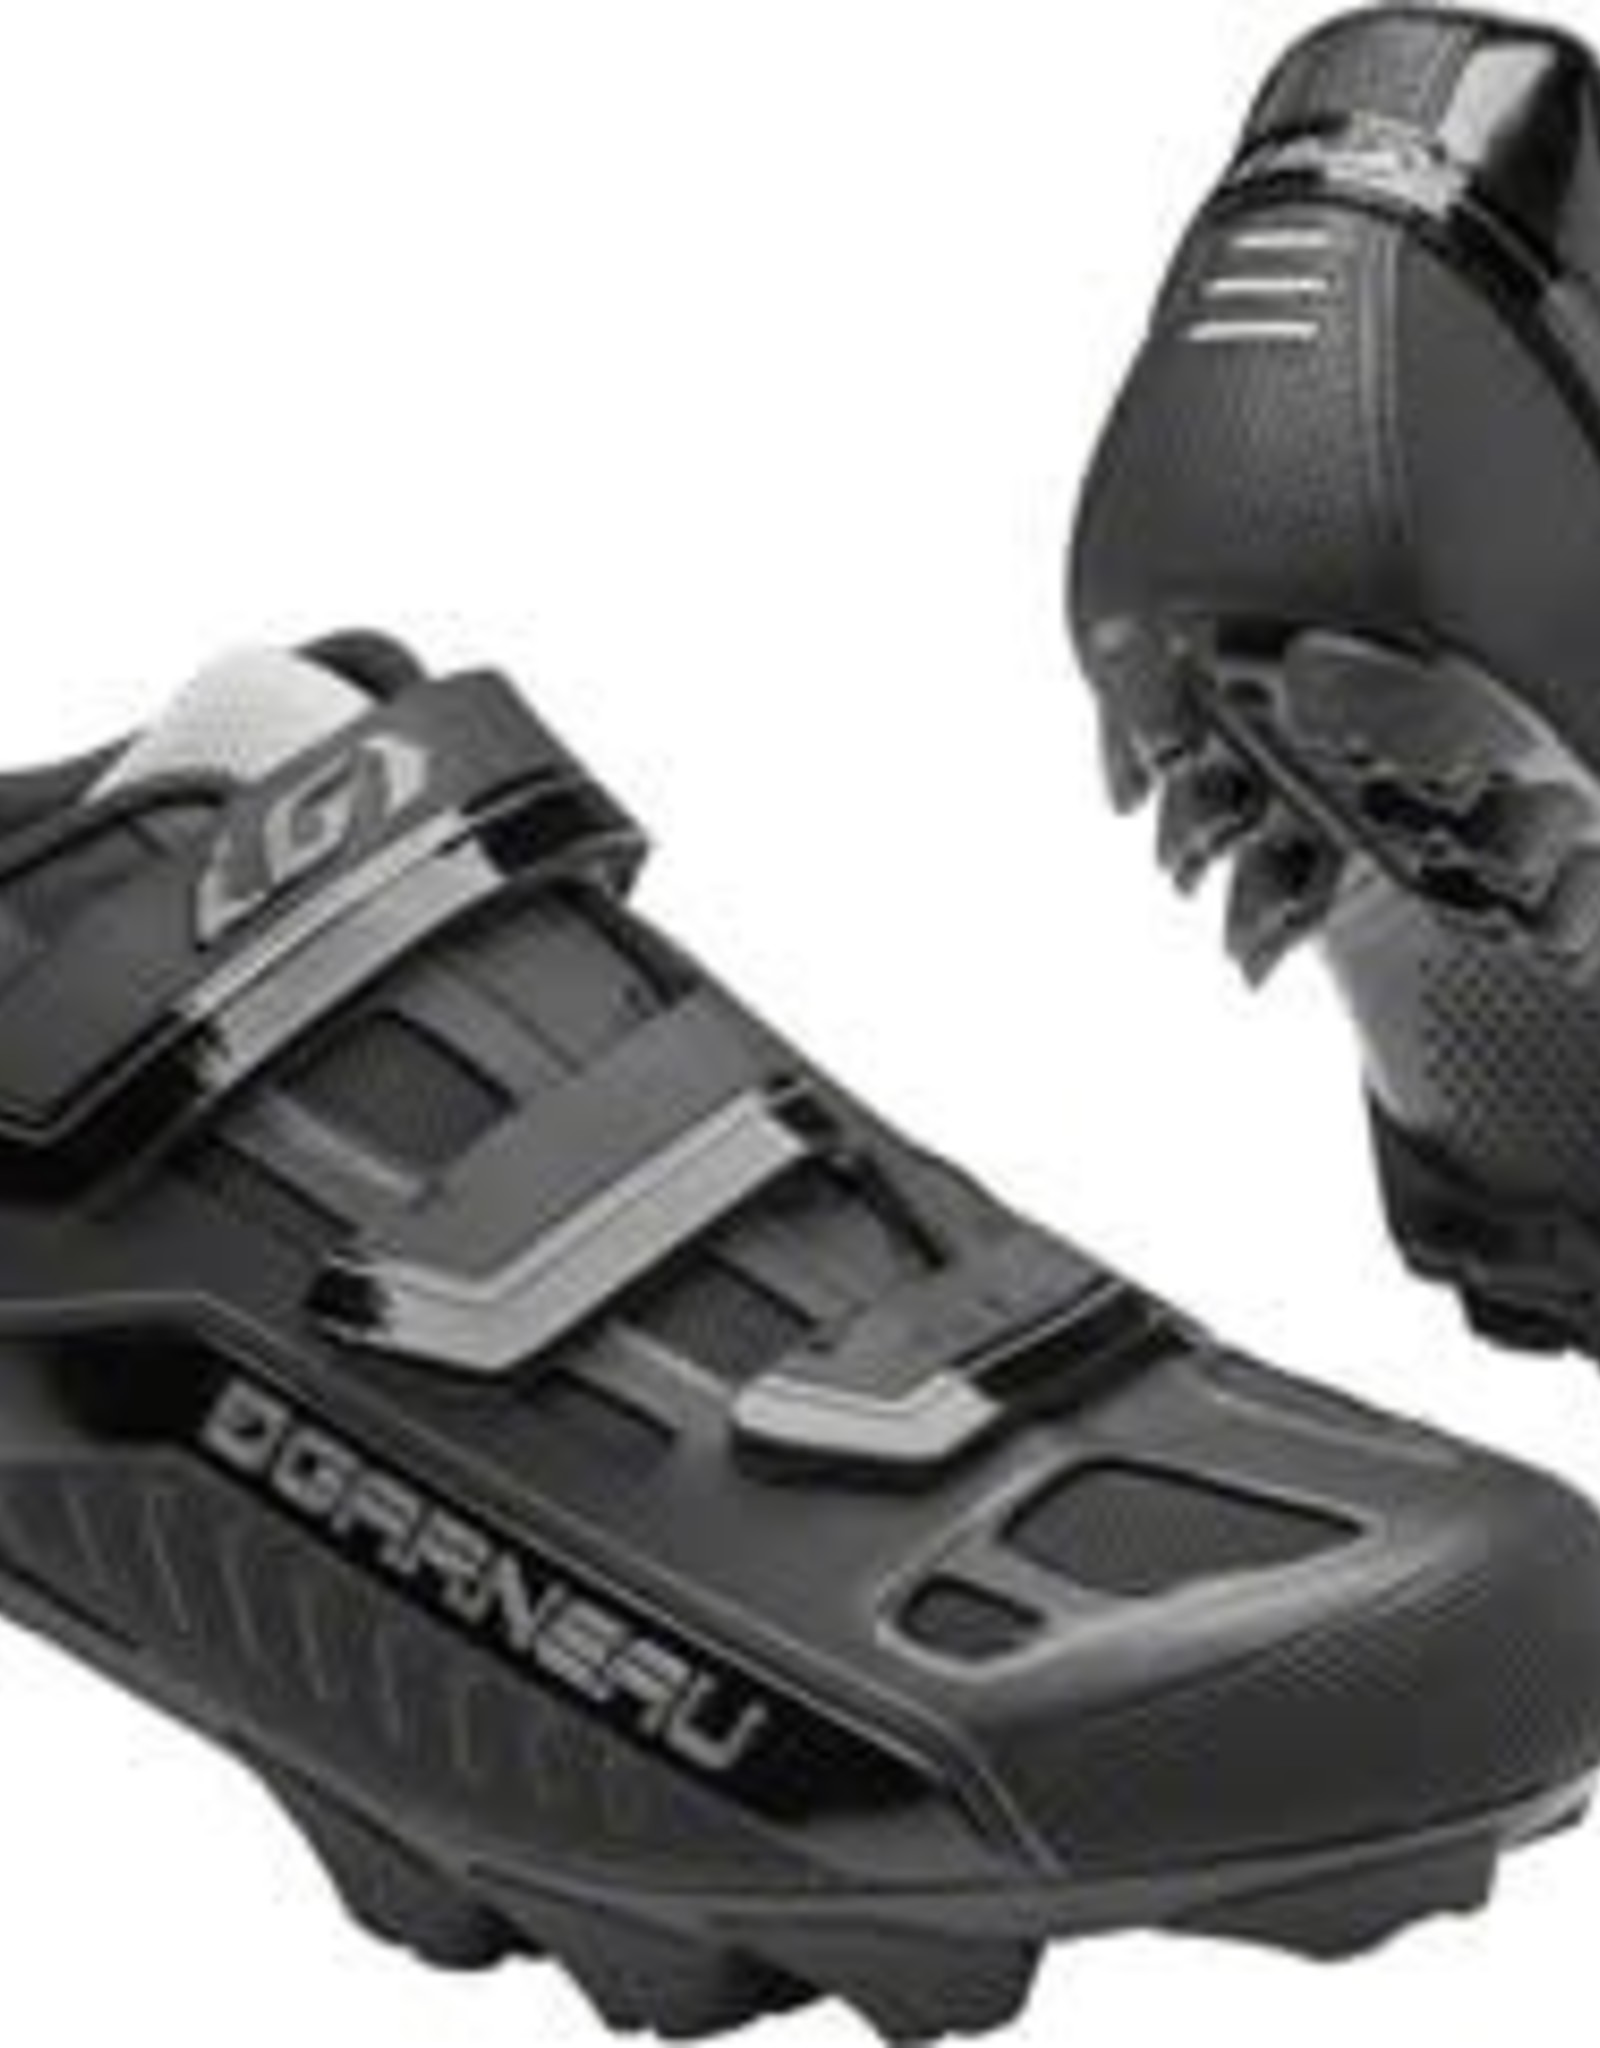 Louis Garneau Louis Garneau Gravel Men's MTB Shoe: Black 47